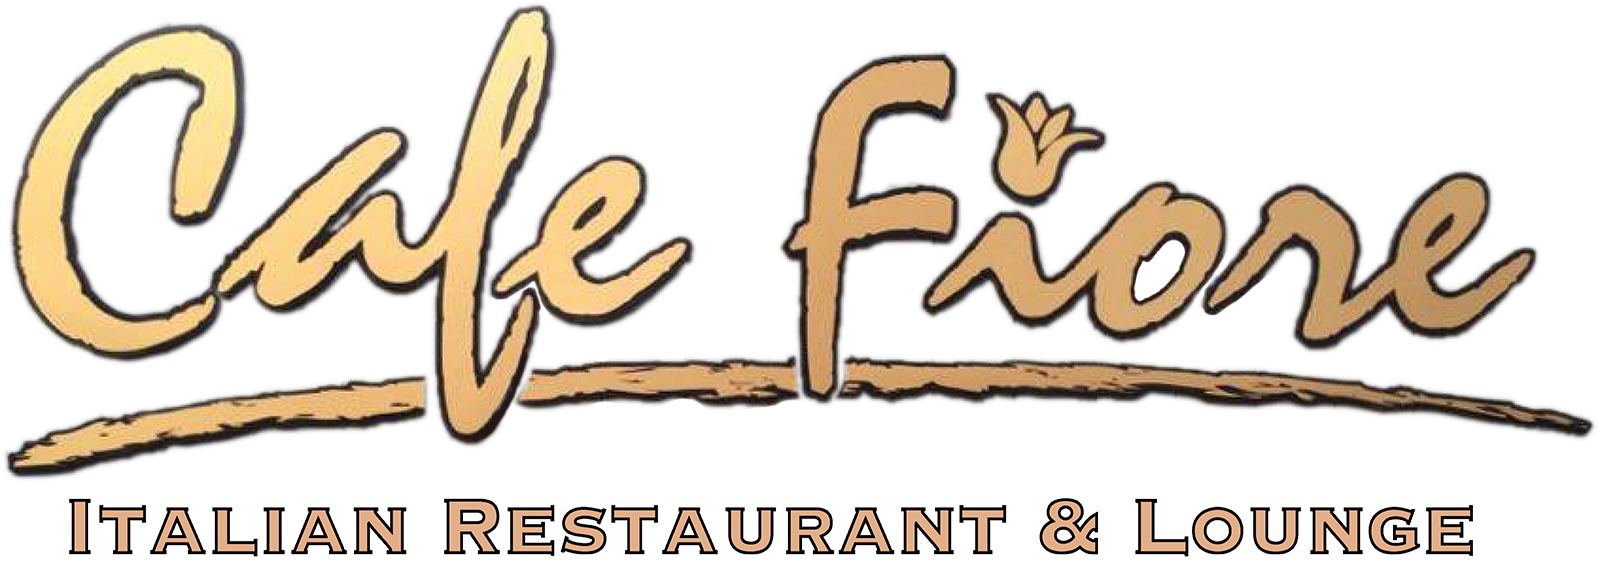 Cafe Fiore Restaurant - Branford